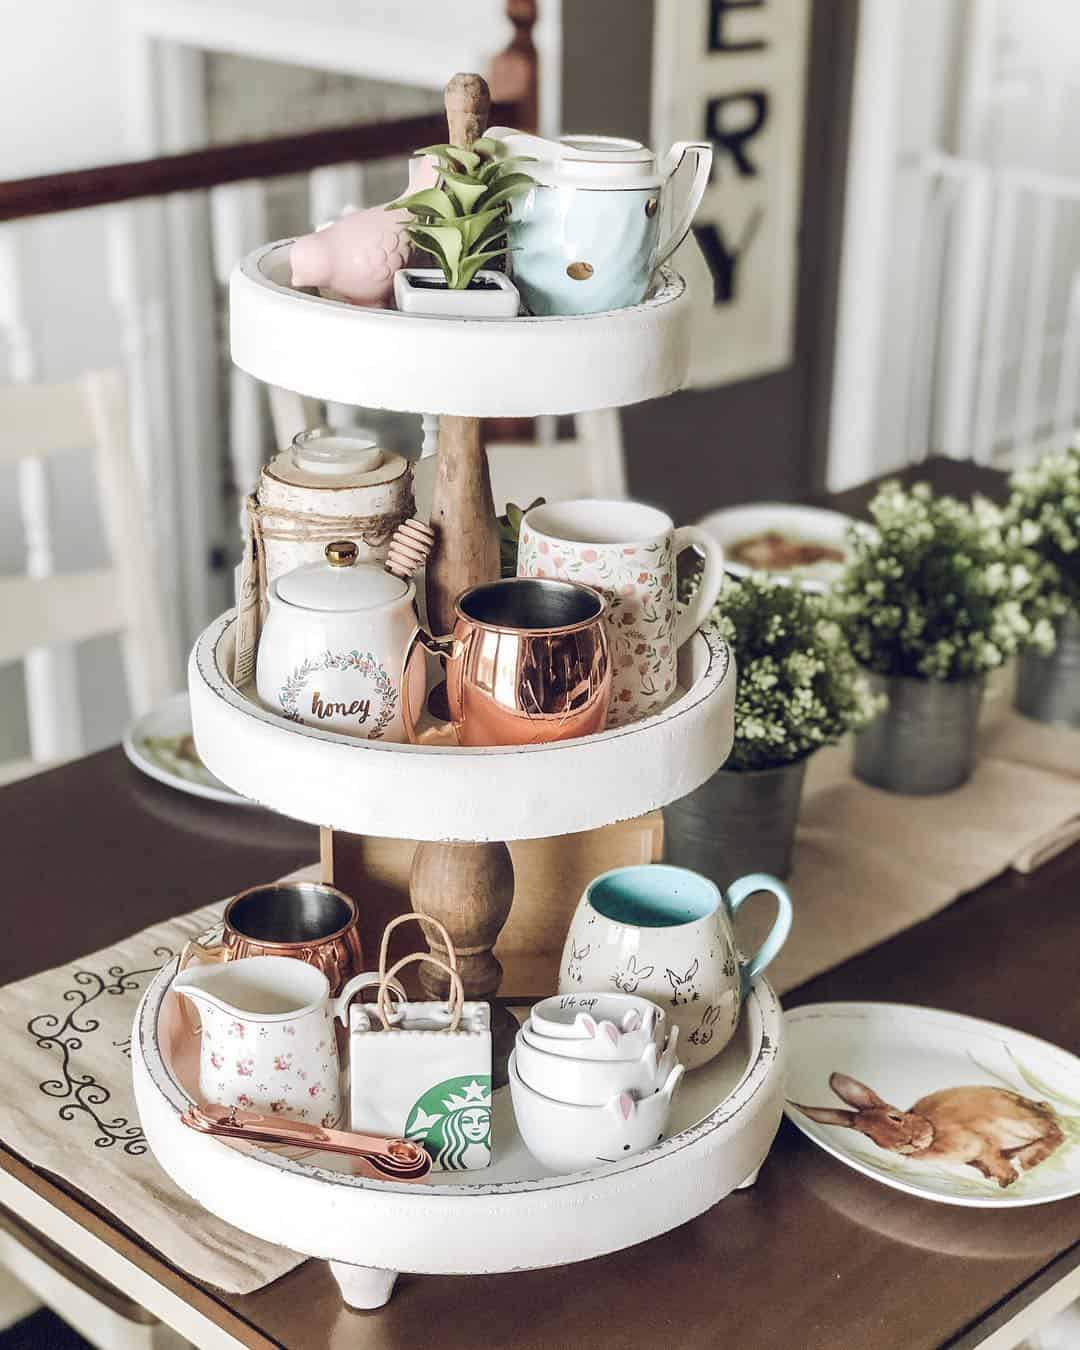 25 Cute Easter Decoration Ideas To Spruce Up Your Home